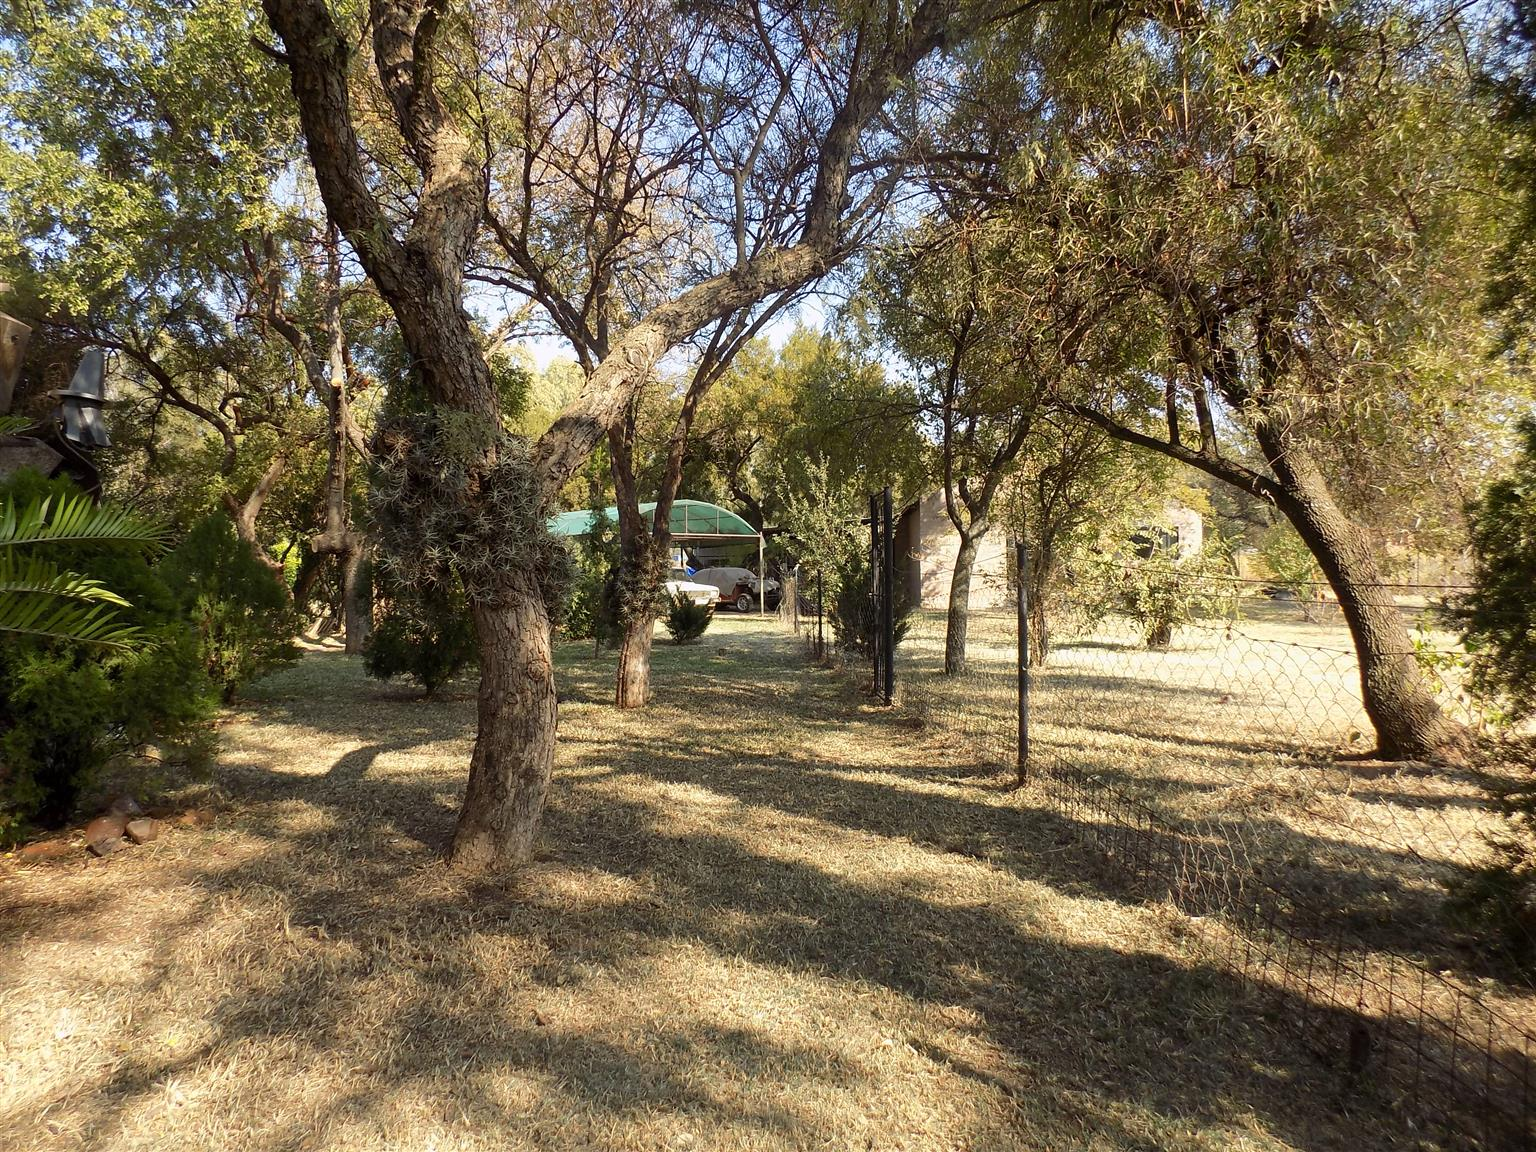 Smallholding Uniquely designed property for sale in a cul-de-sac near Roodeplaat Dam